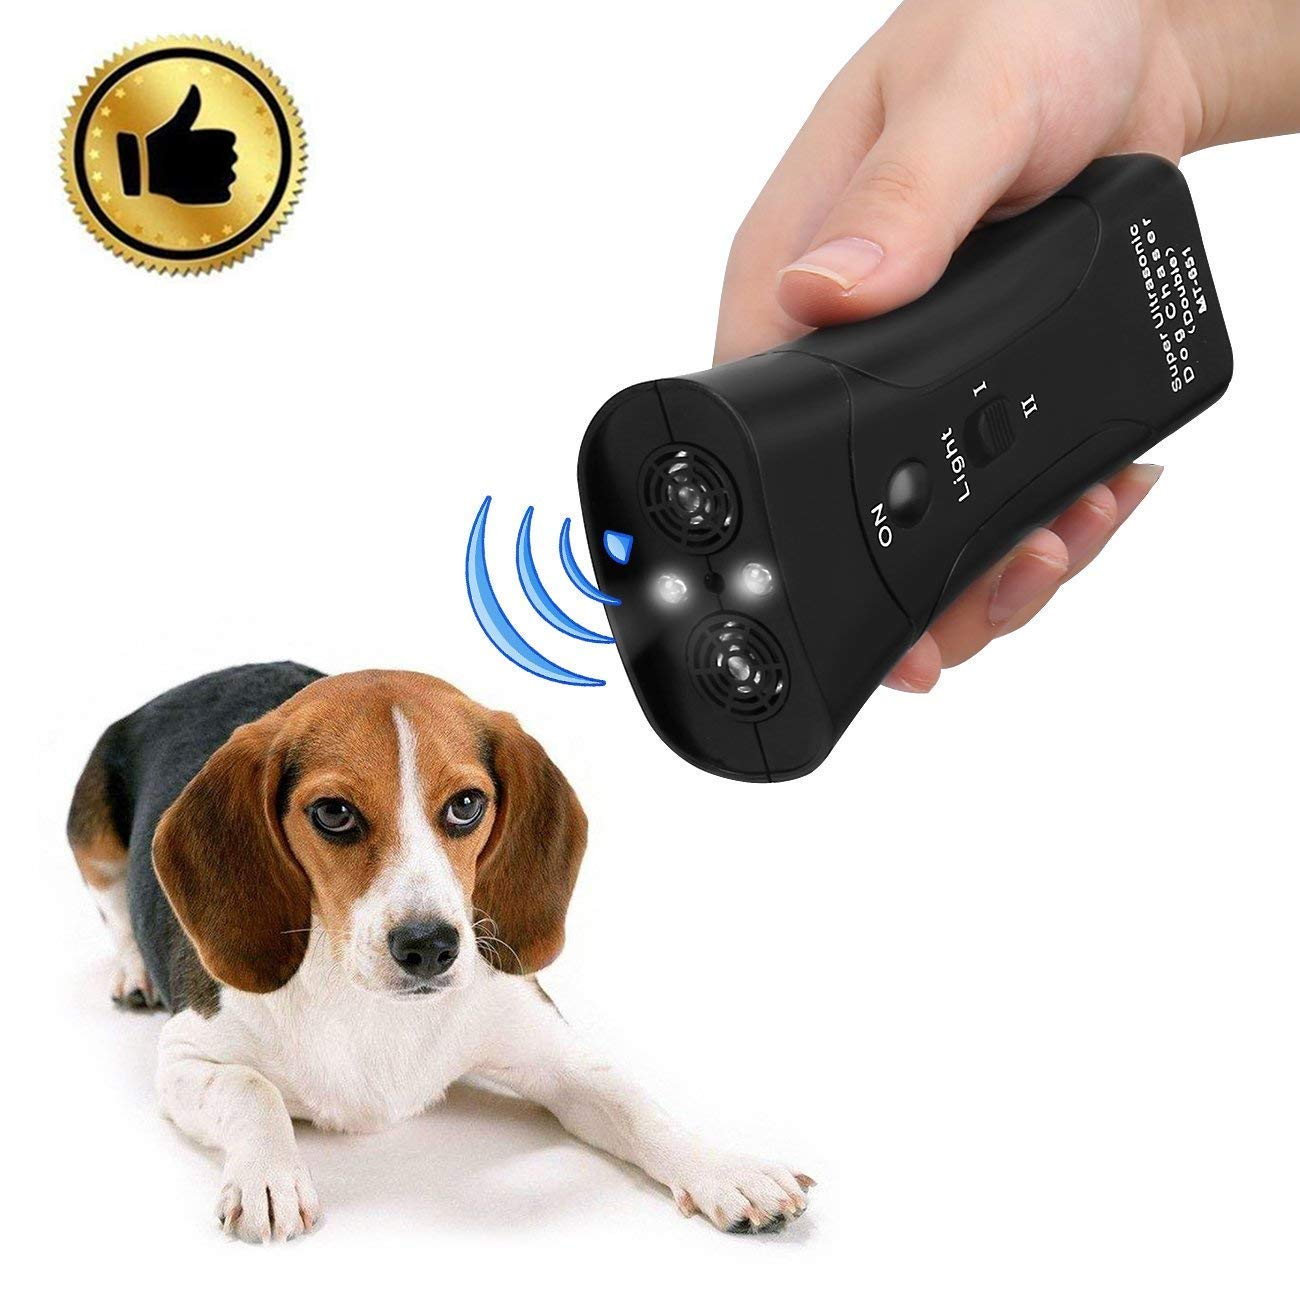 Hqdz Handheld Dog Repellent & Trainer,Dual Channel Electronic Animal Repellent,LED Ultrasonic Dog Chaser Aggressive Attack Repeller Trainer Flashlight Effective Barking Stop Device,Waterproof Dog